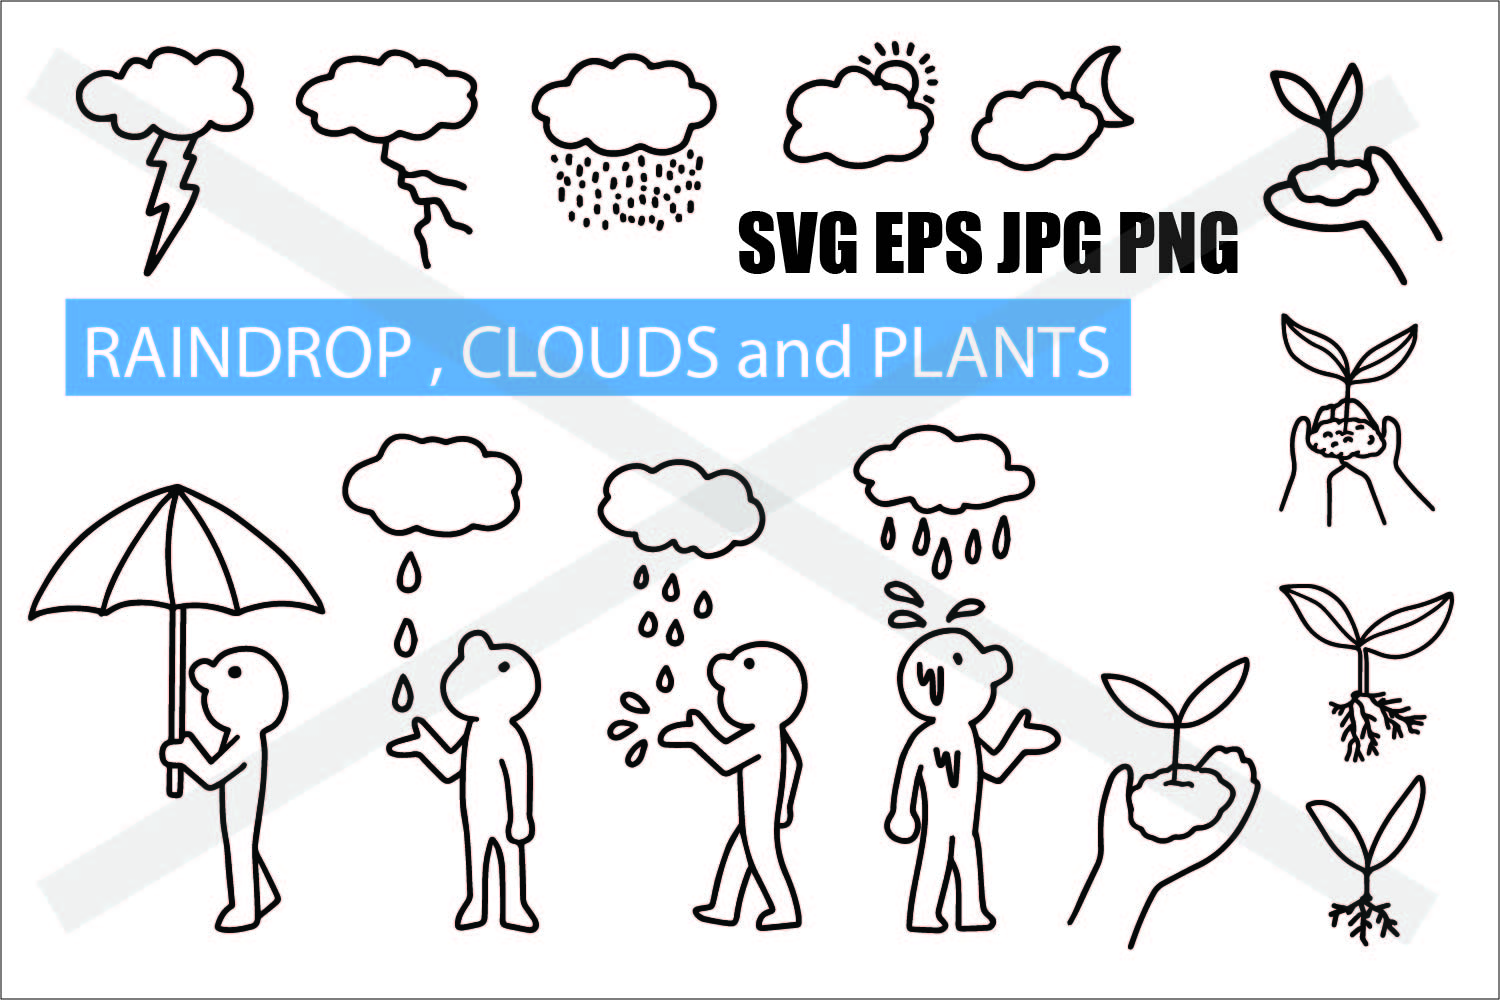 Cloud Raindrop and Plant - SVG EPS JPG PNG example image 1